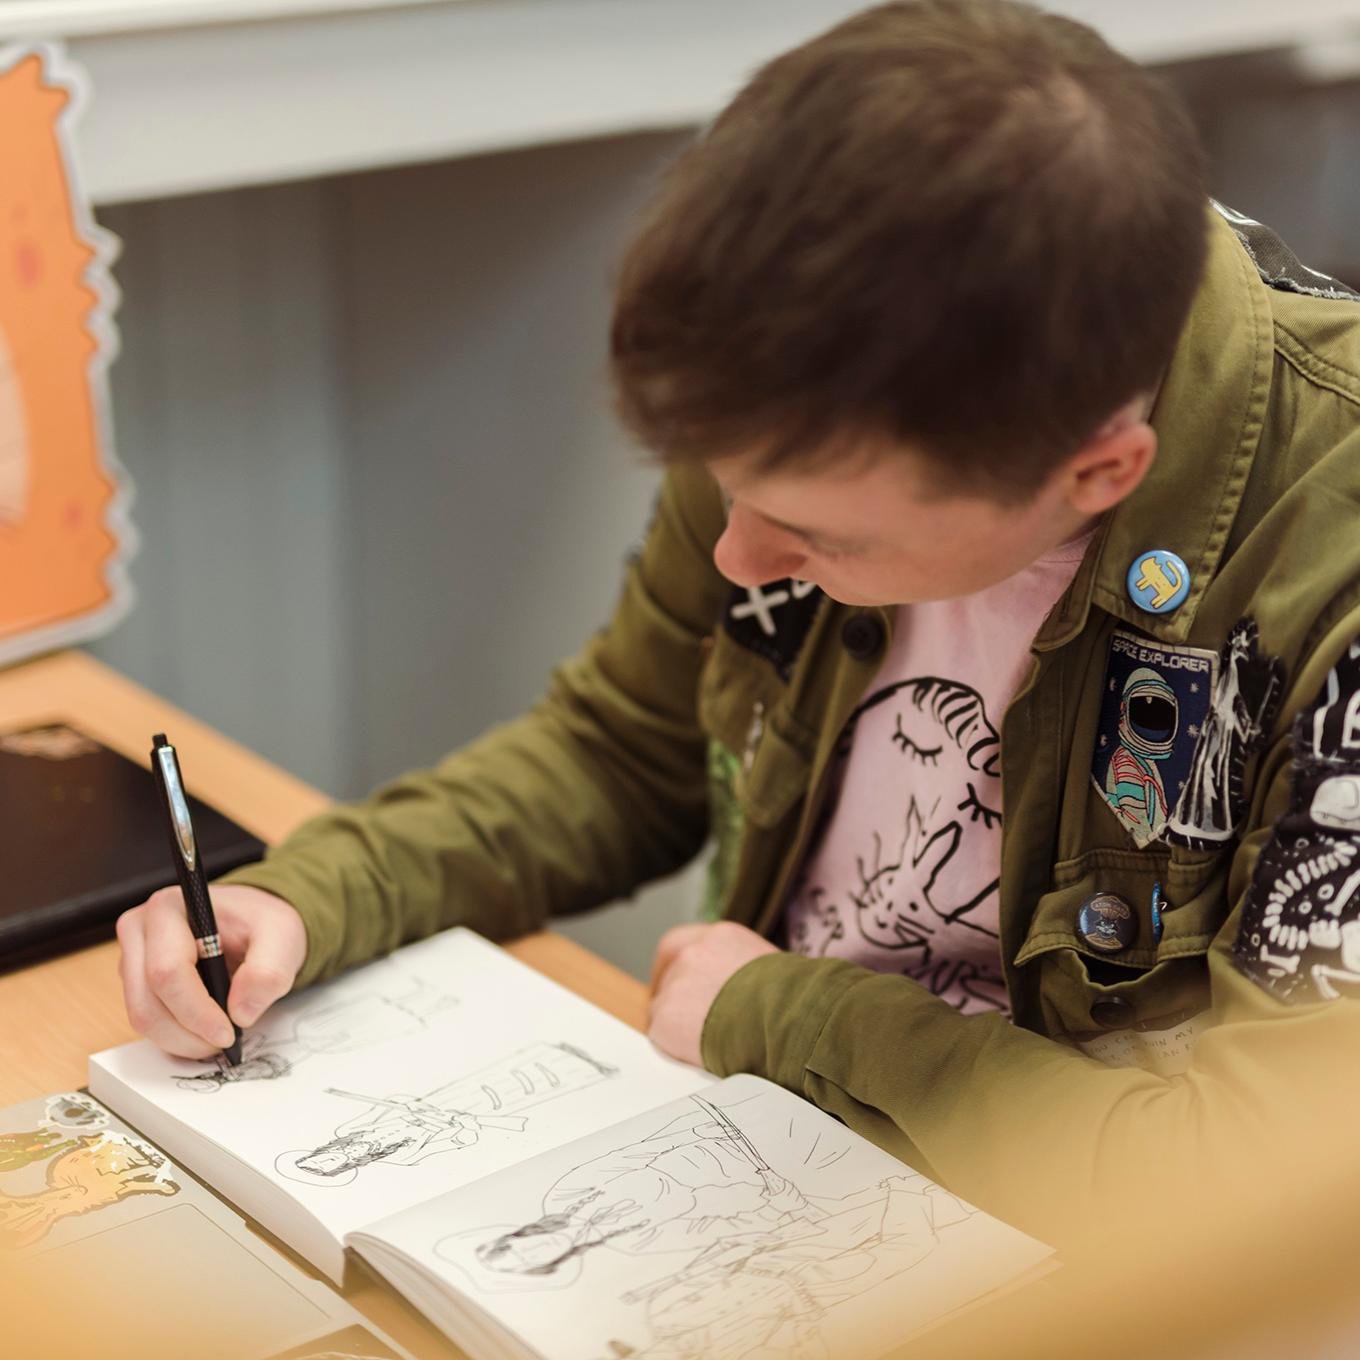 A comics student sketches out ideas